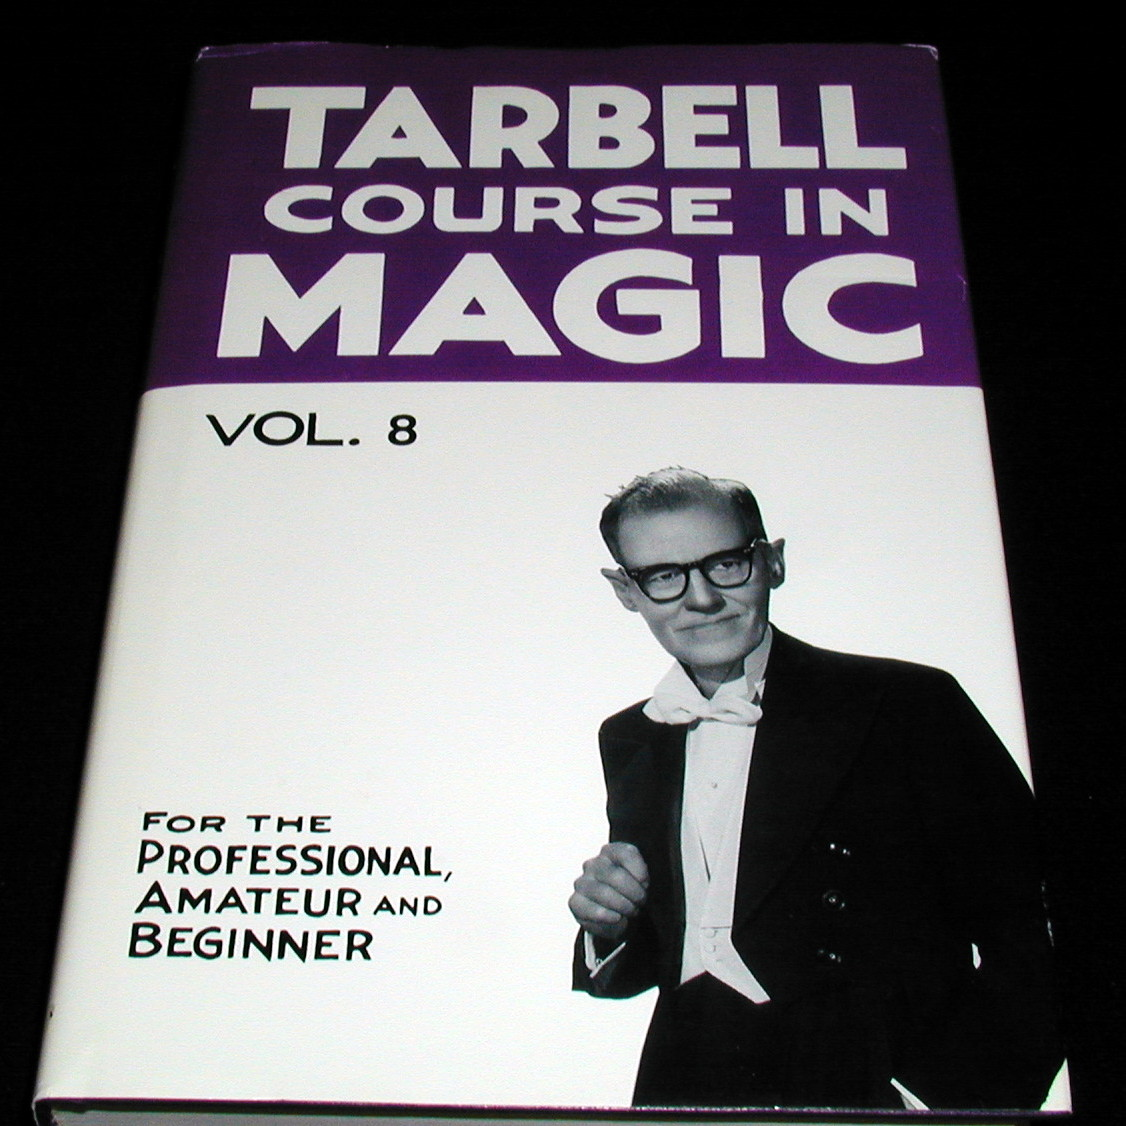 THE TARBELL COURSE IN MAGIC VOLUME 8 - GREAT HARDBACK EDITION FOR ALL MAGICIANS!